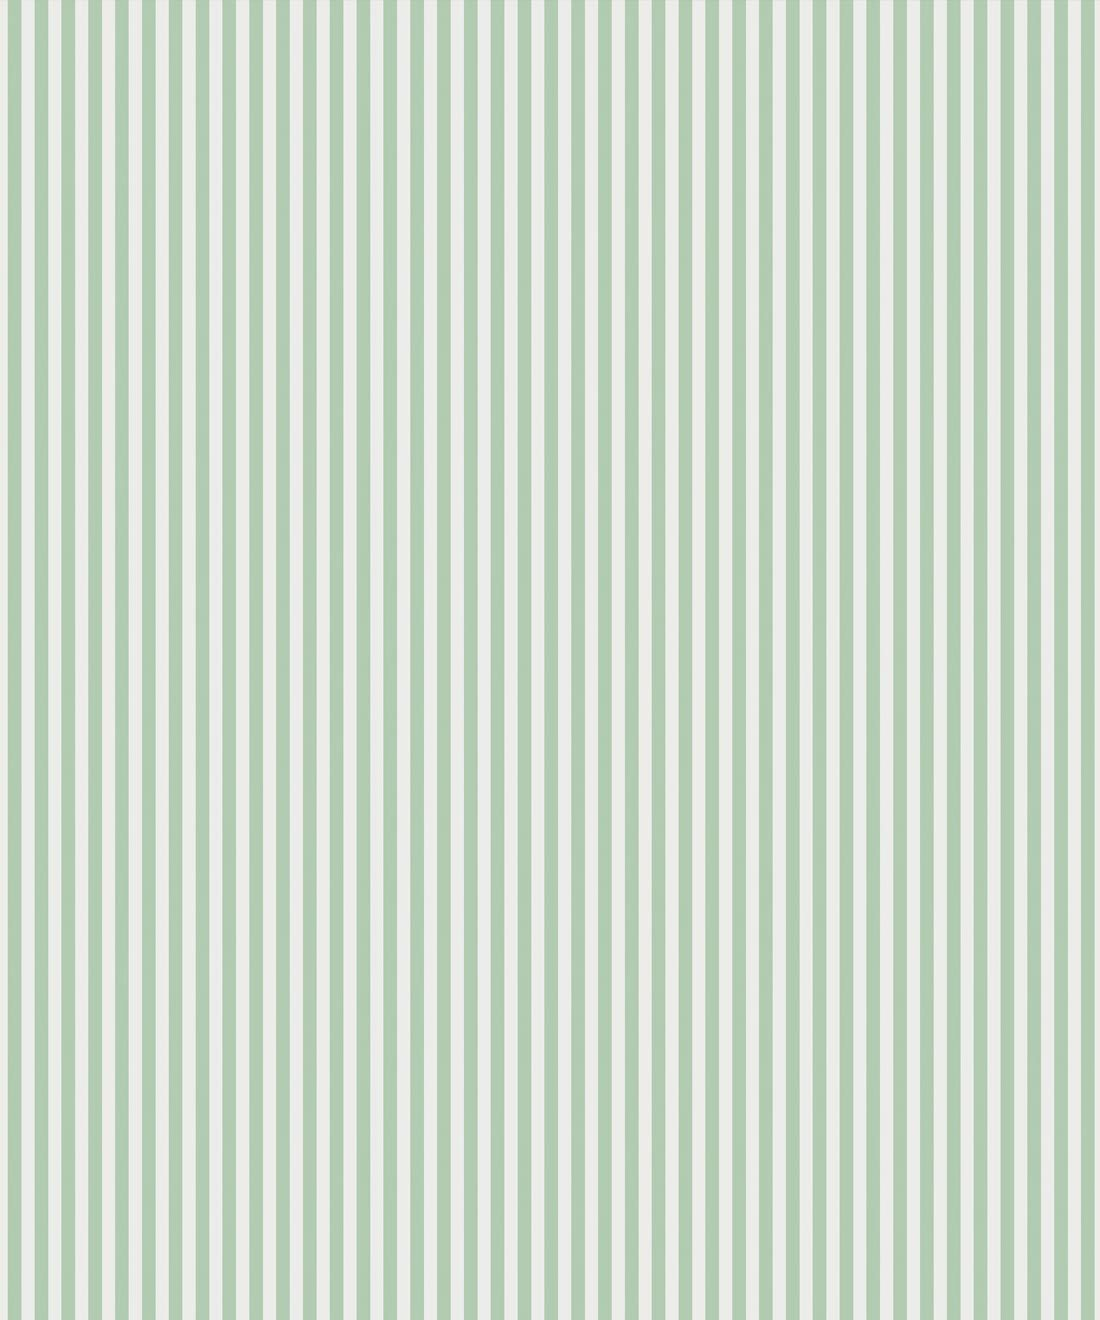 Candy Stripe Wallpaper